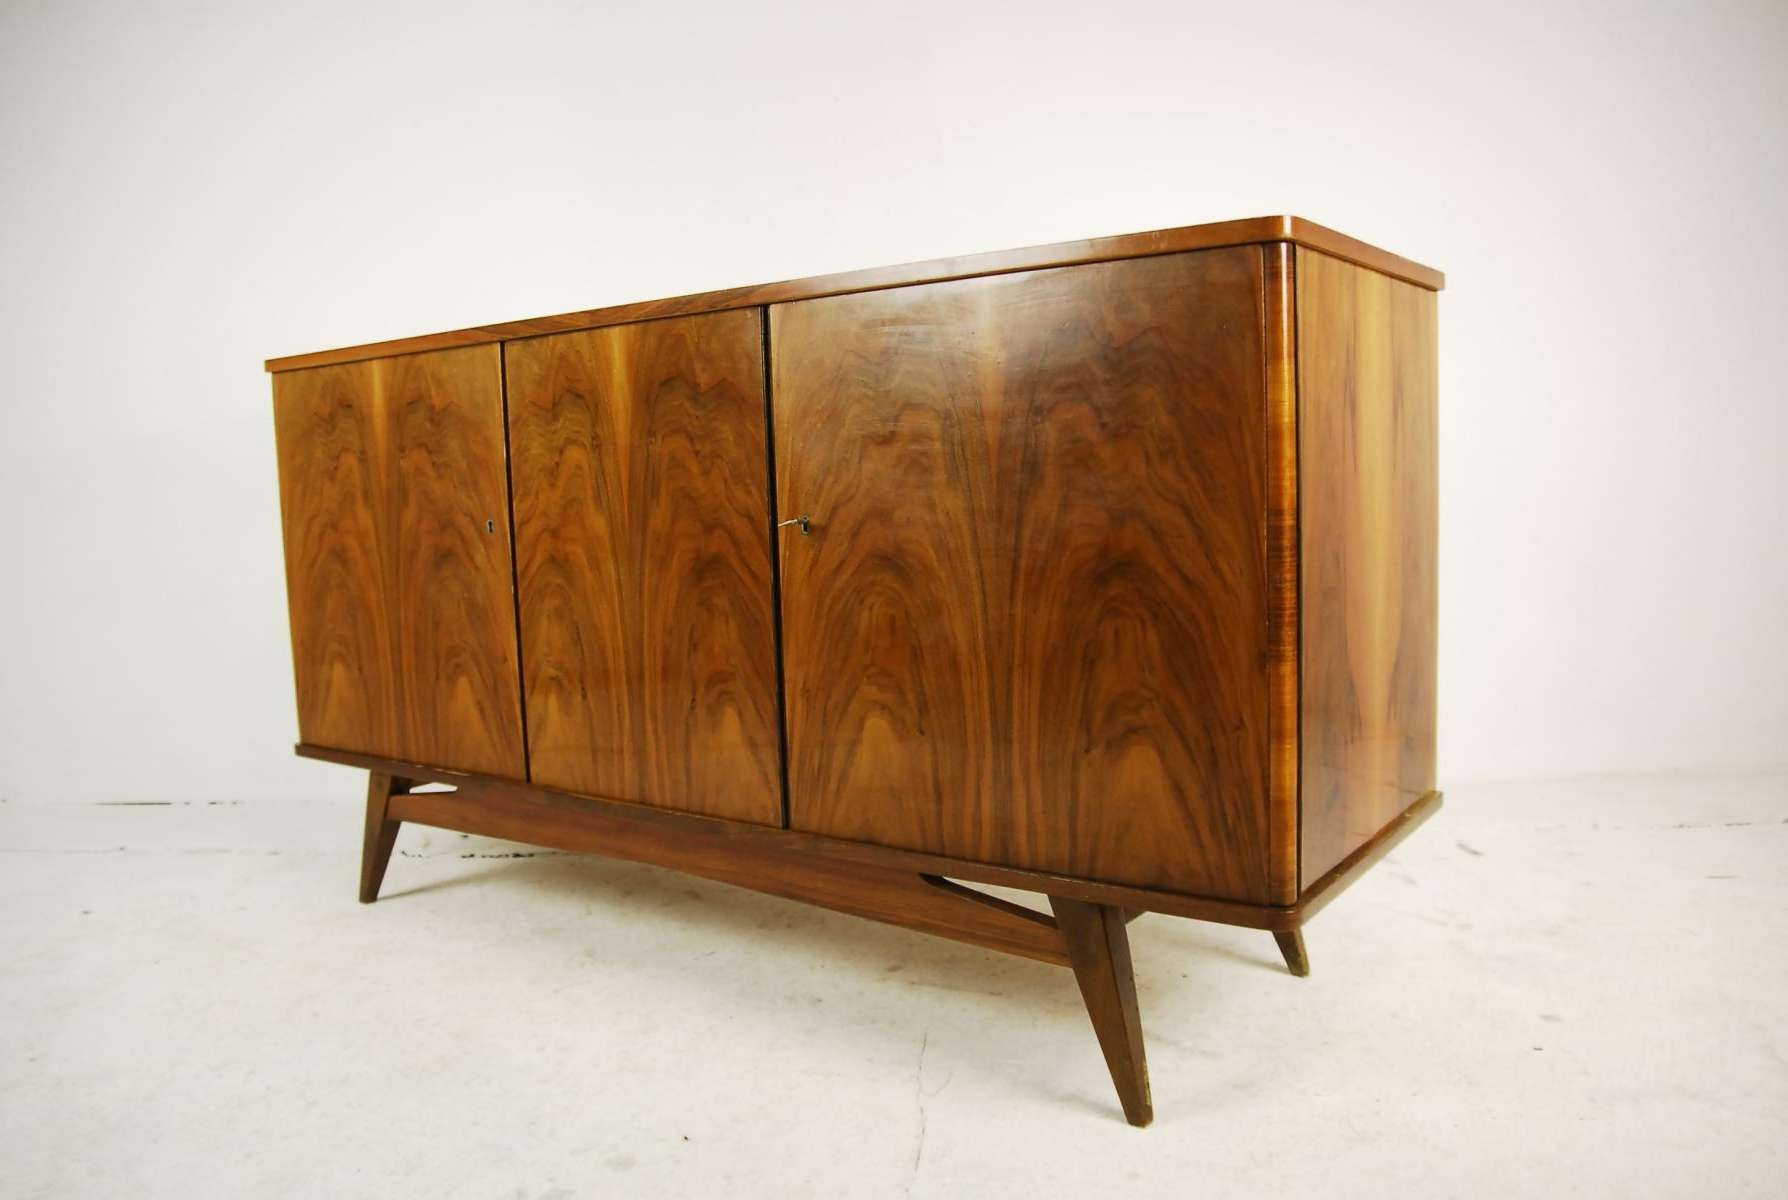 Beech Sideboard From Lodz Furniture Factory, 1960s For Sale At Pamono Within Beech Sideboards (View 12 of 20)